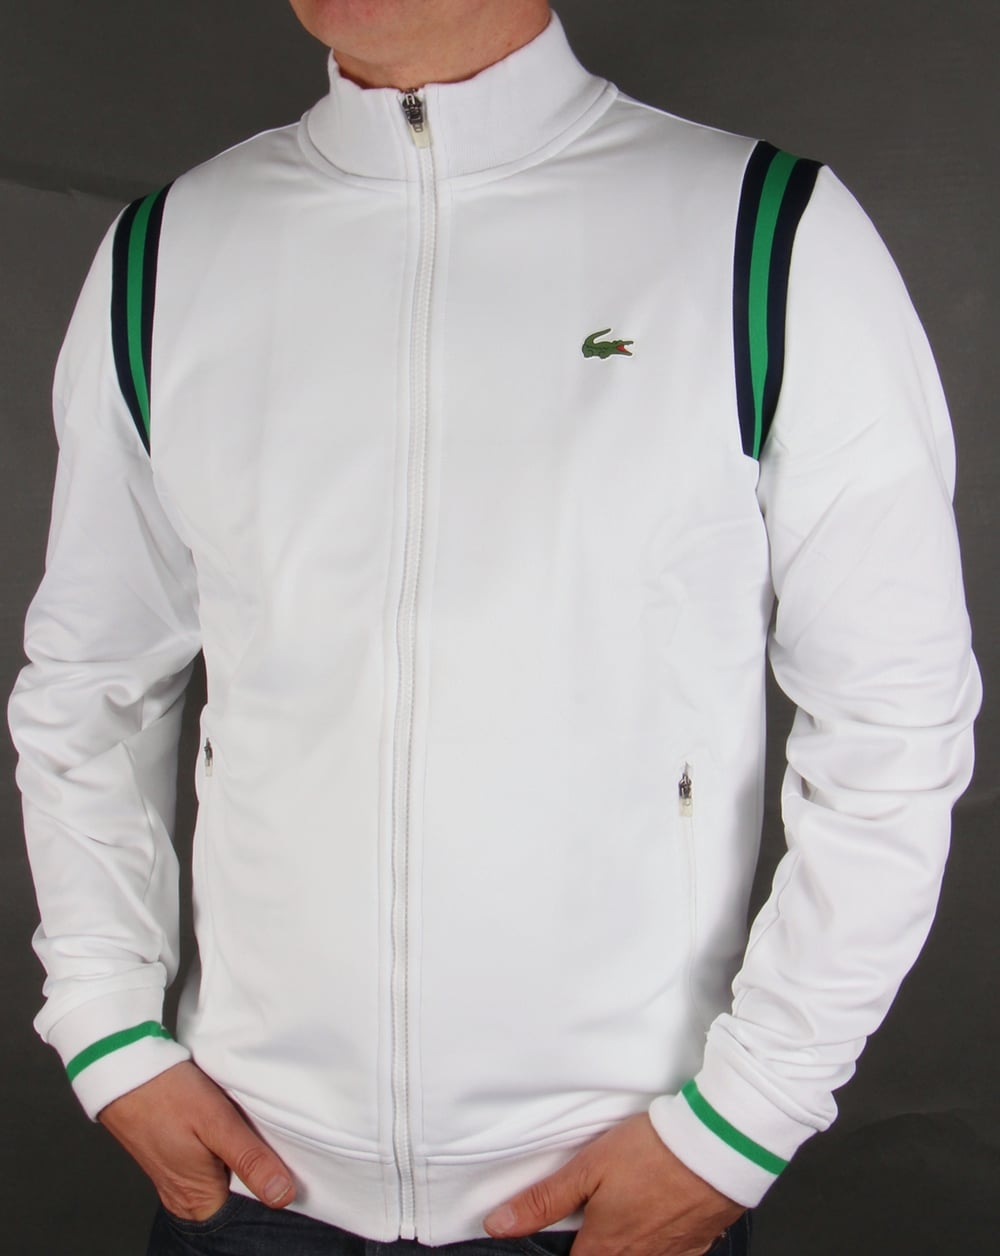 Lacoste Sport Shoulder Stripe Track Top White Green Navy